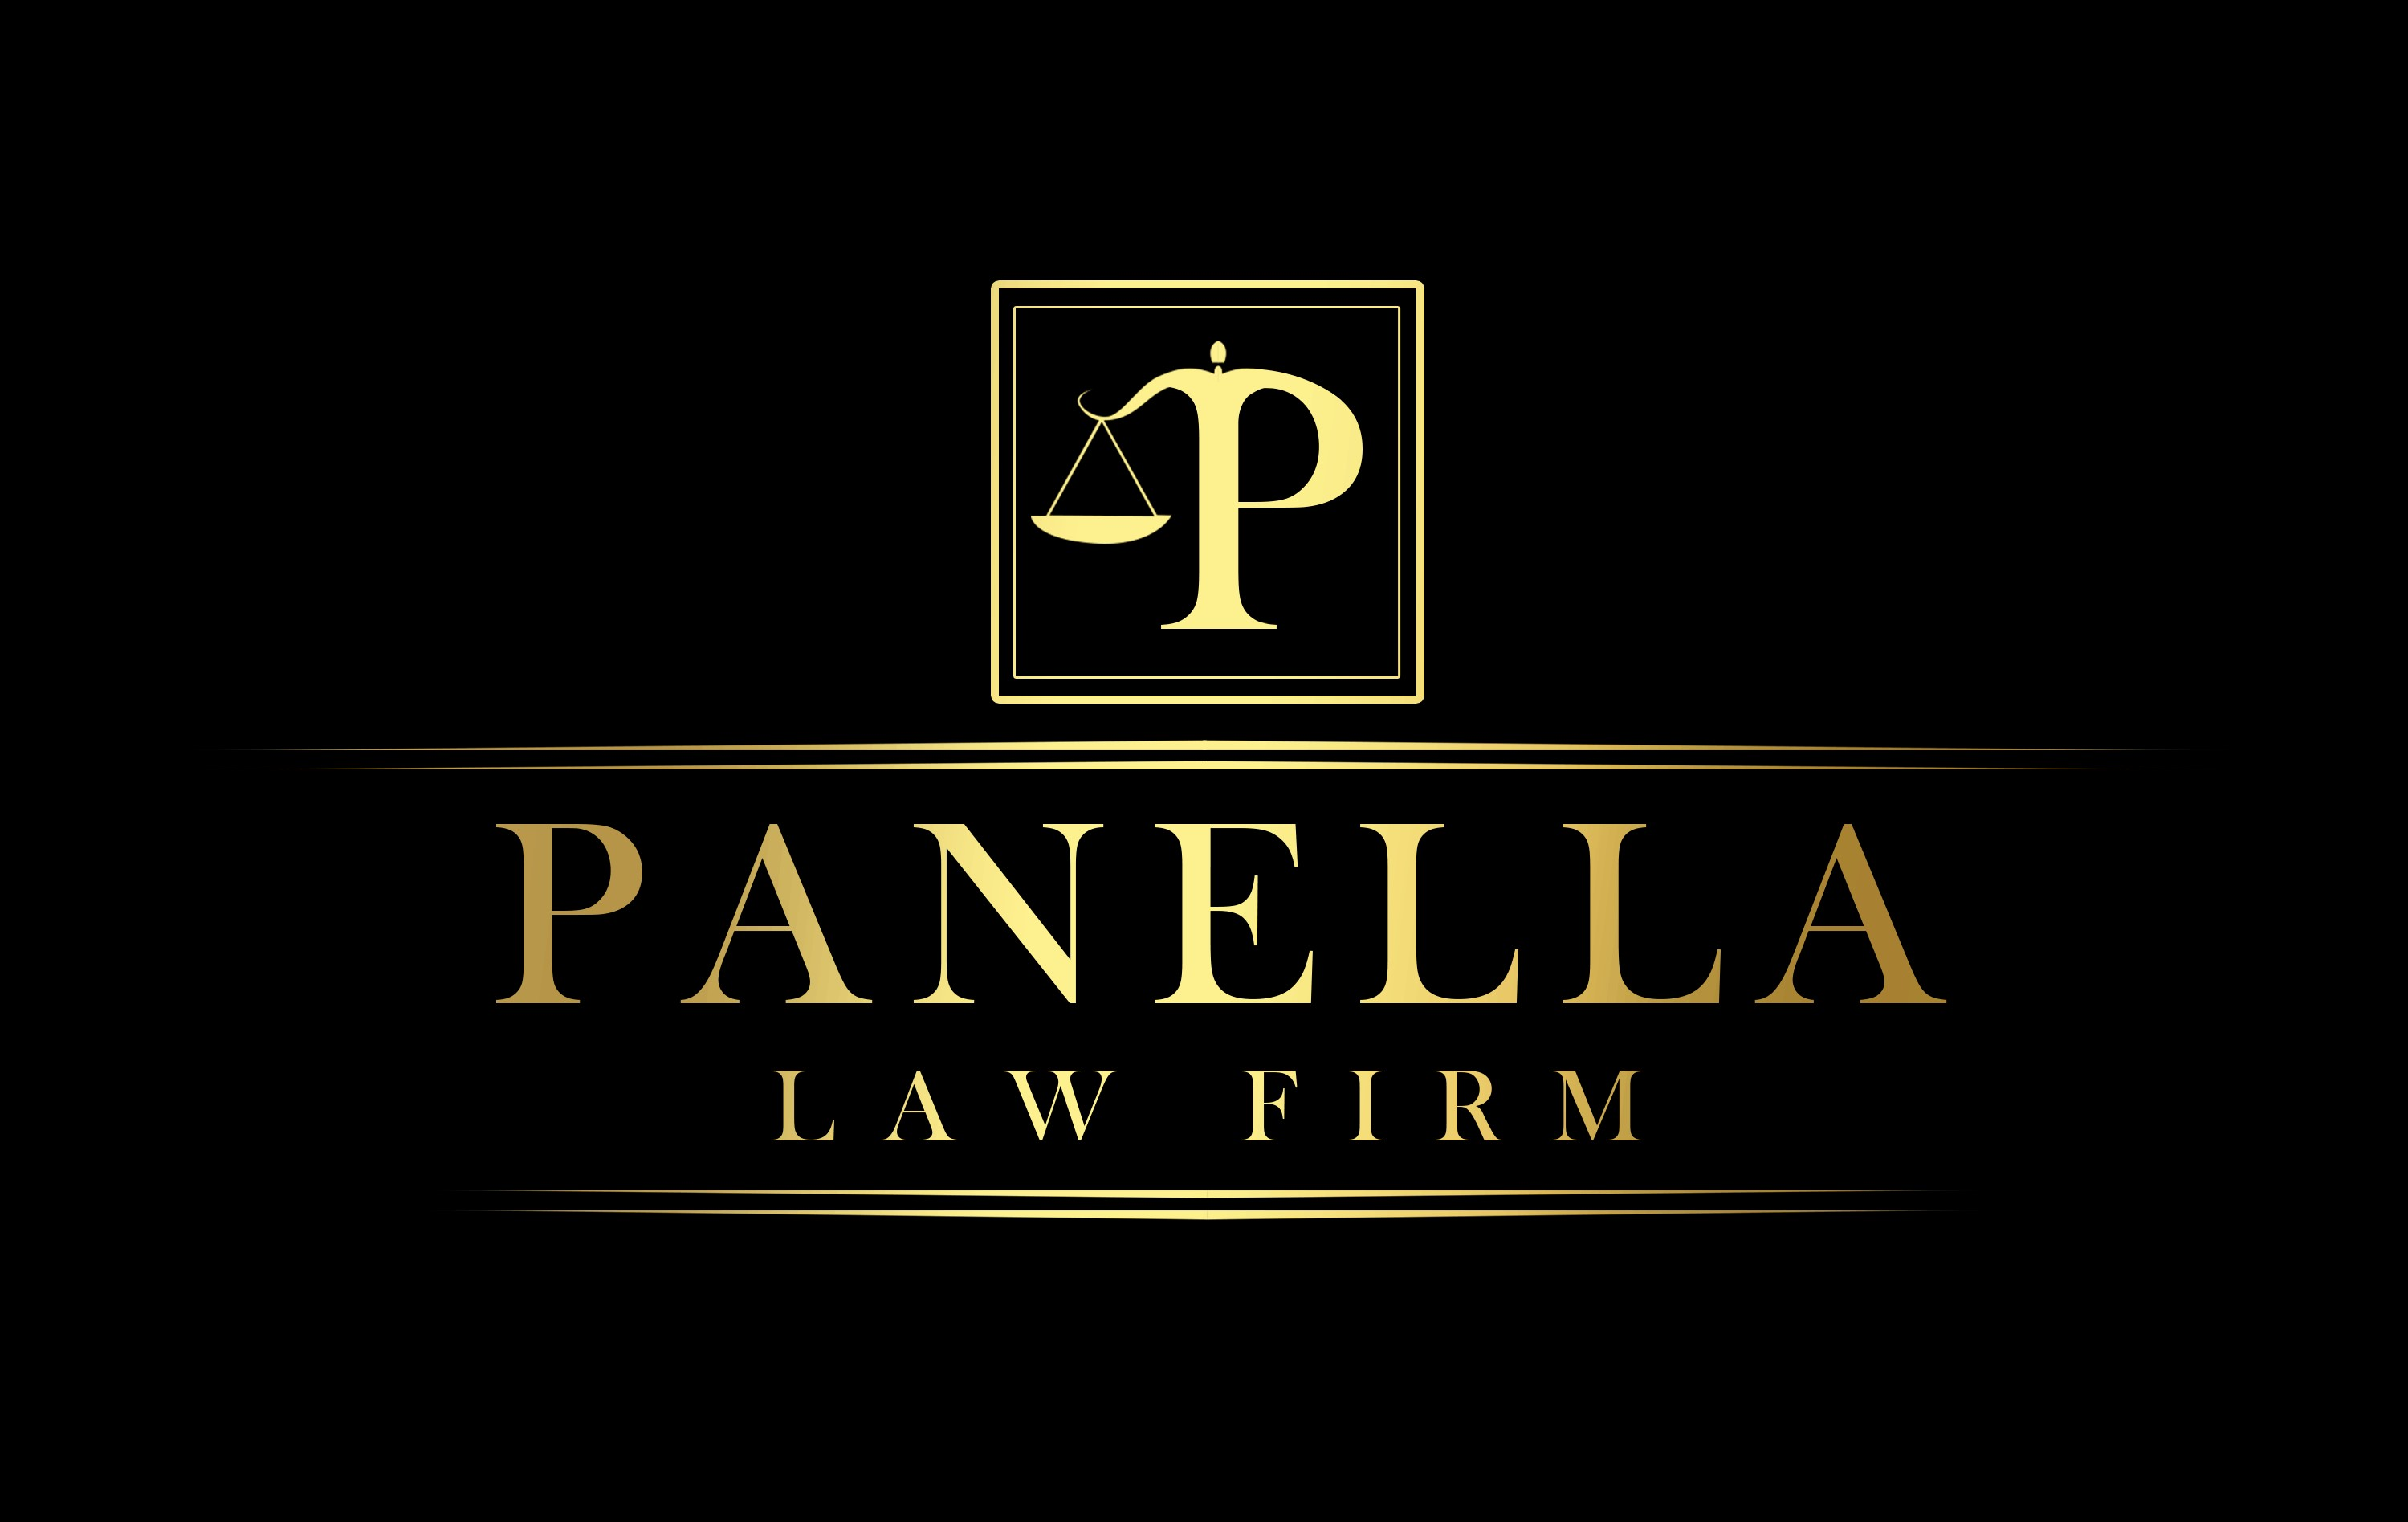 Panella Law Firm